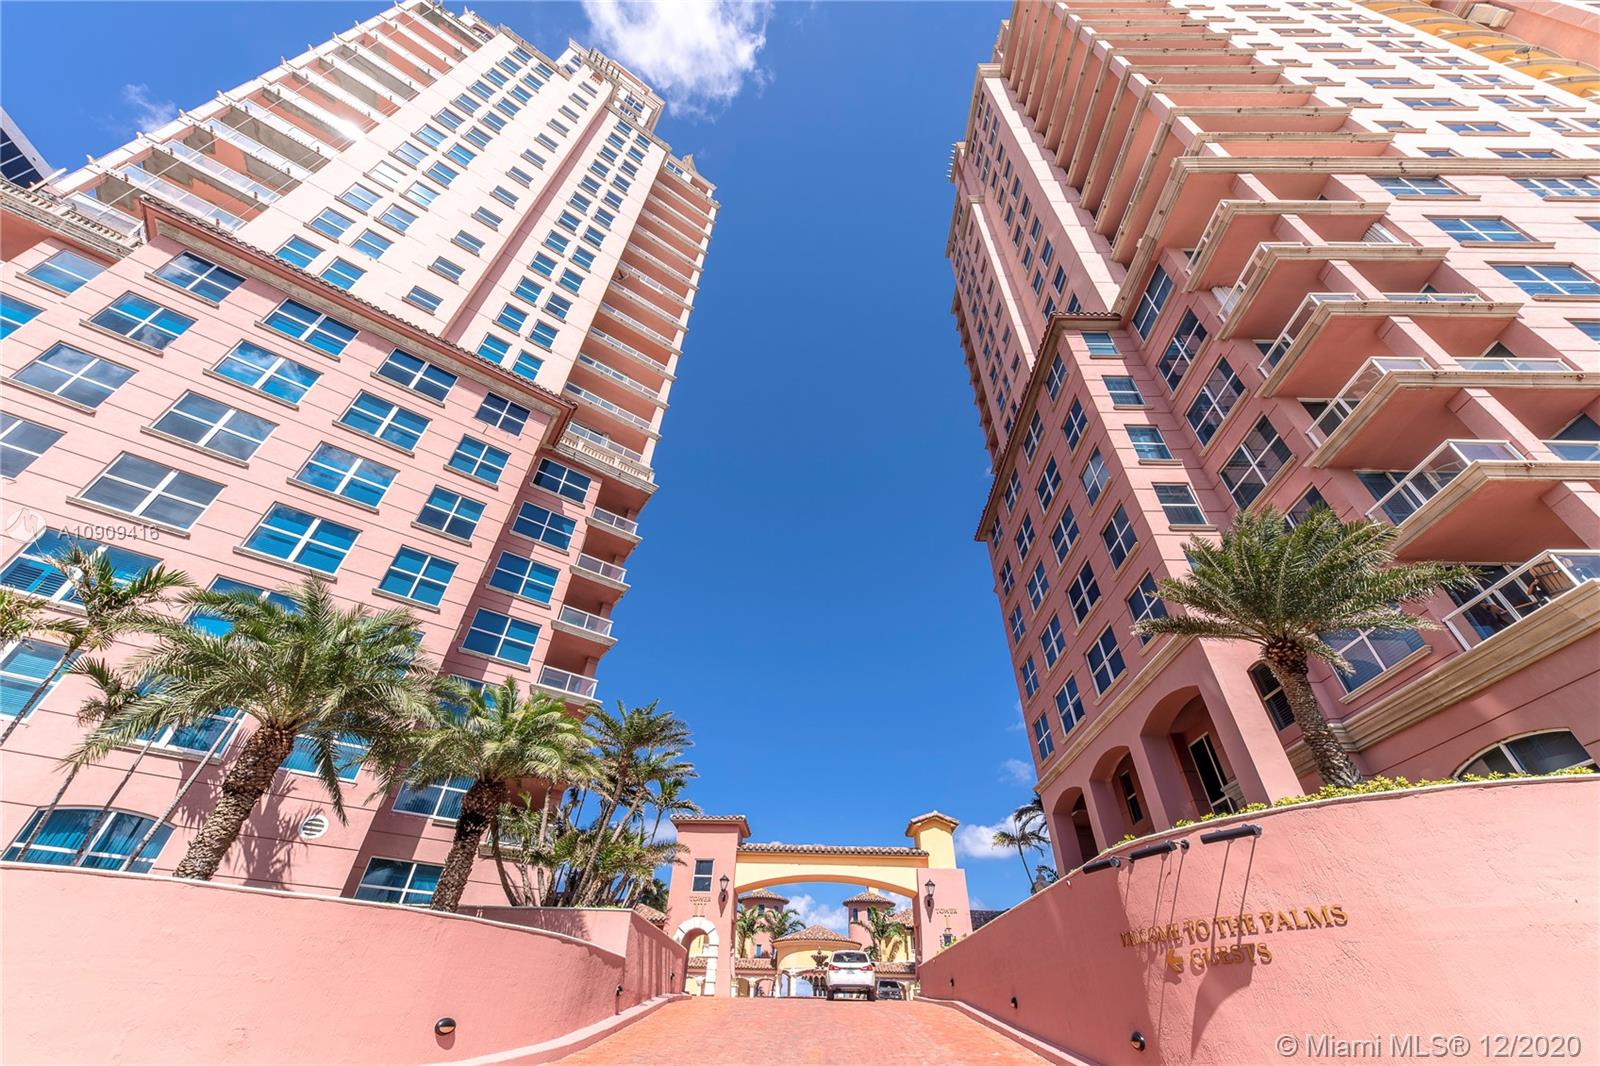 HUGE PRICE REDUCTION!!! REDUCED OVER 400k! This is a SMOKING DEAL!!!  Proudly presenting, this one of a kind (custom) double unit at The Palms in Tower II. Recently updated, 19A/D gives a light and bright feeling as soon as you step out of the elevator. Enjoy direct ocean views of beautiful Fort Lauderdale beach and the ICW from two oversized terraces on each side of the unit. This 4 bedroom and 4.5 bath lifestyle, has an open floor-plan and massive great room with over 4000sqft of living! Huge Master suite! Large bedrooms. Gourmet kitchen. NO OTHER UNIT LIKE THIS IN THE PALMS. Extremely secure and private. Next door to Auberge, you can walk to restaurants and bars within minutes.